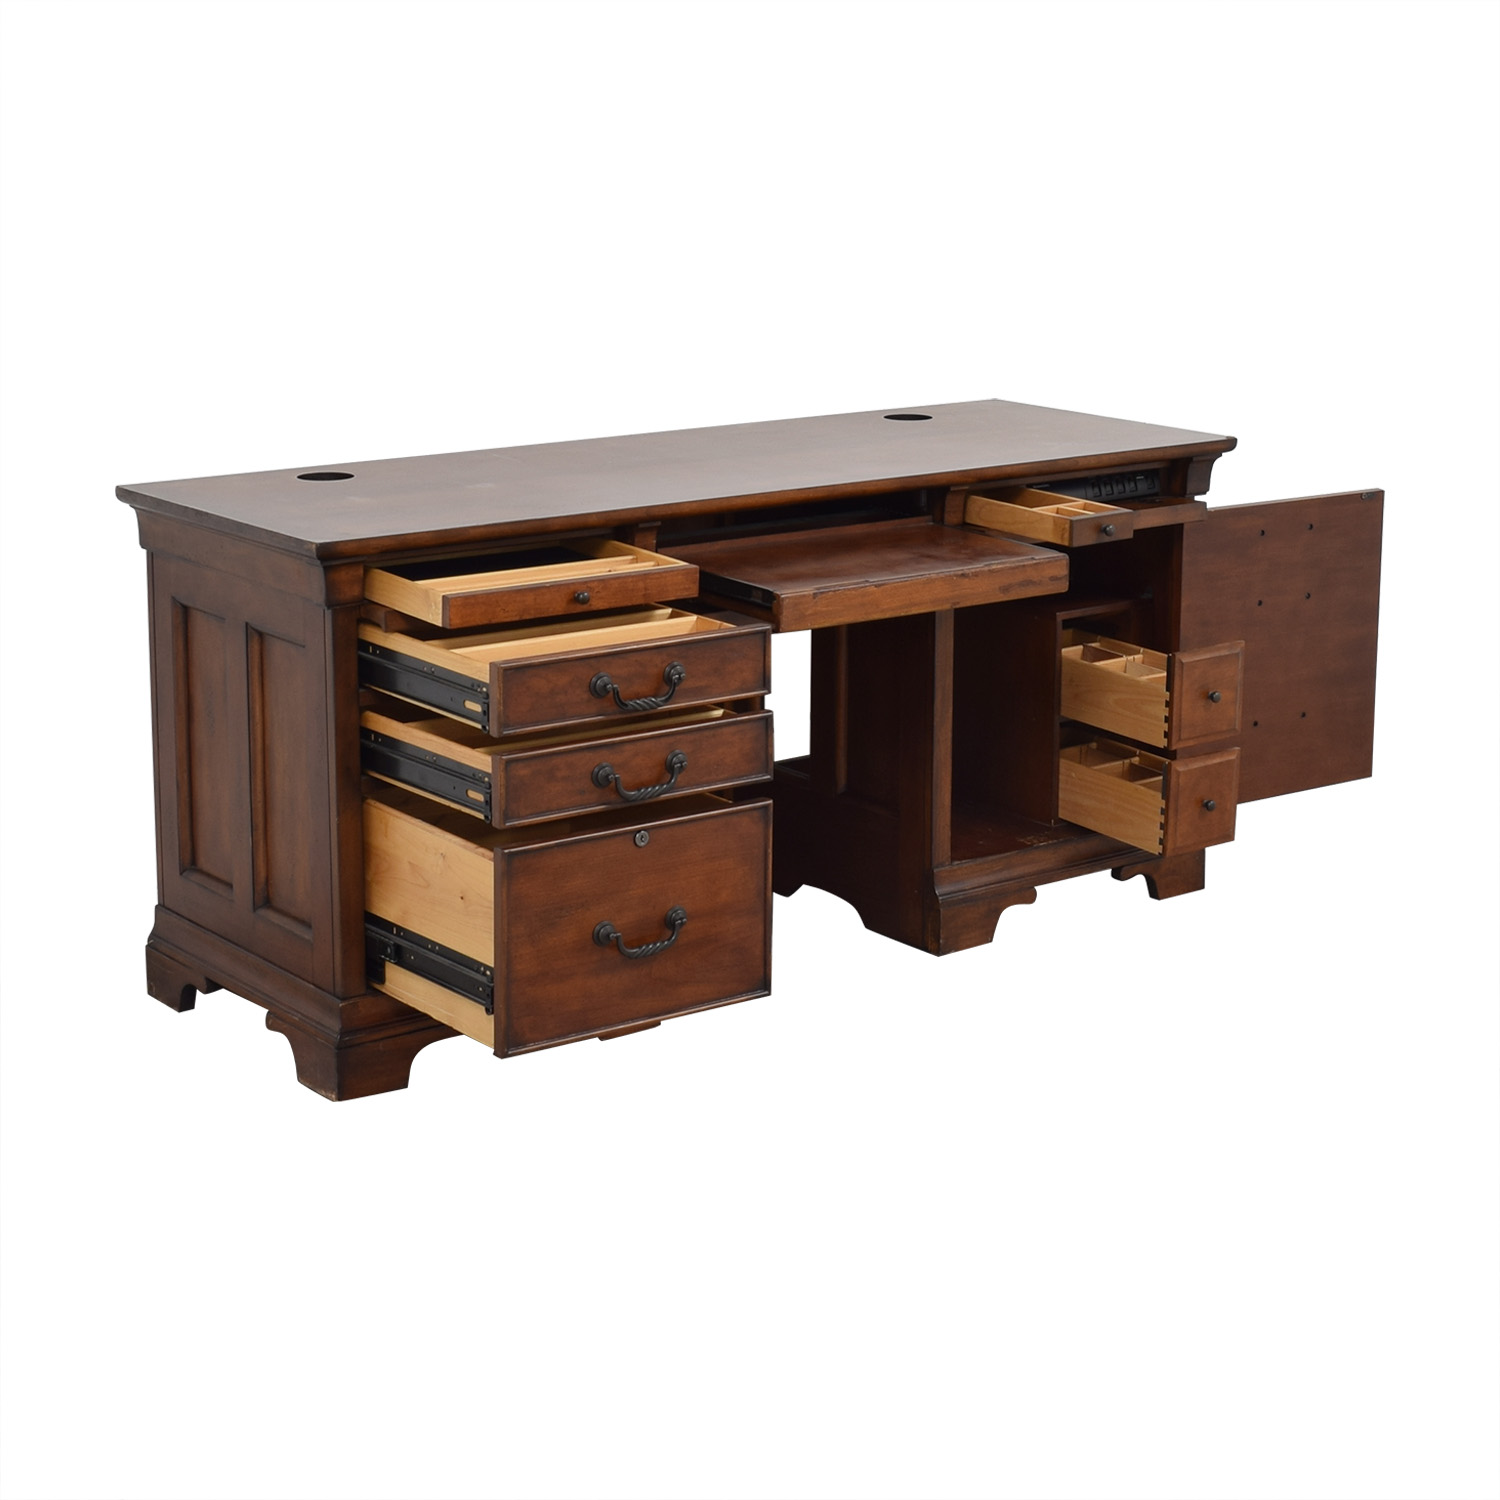 North Carolina Furniture Company Double Pedestal Locking Executive Desk for sale